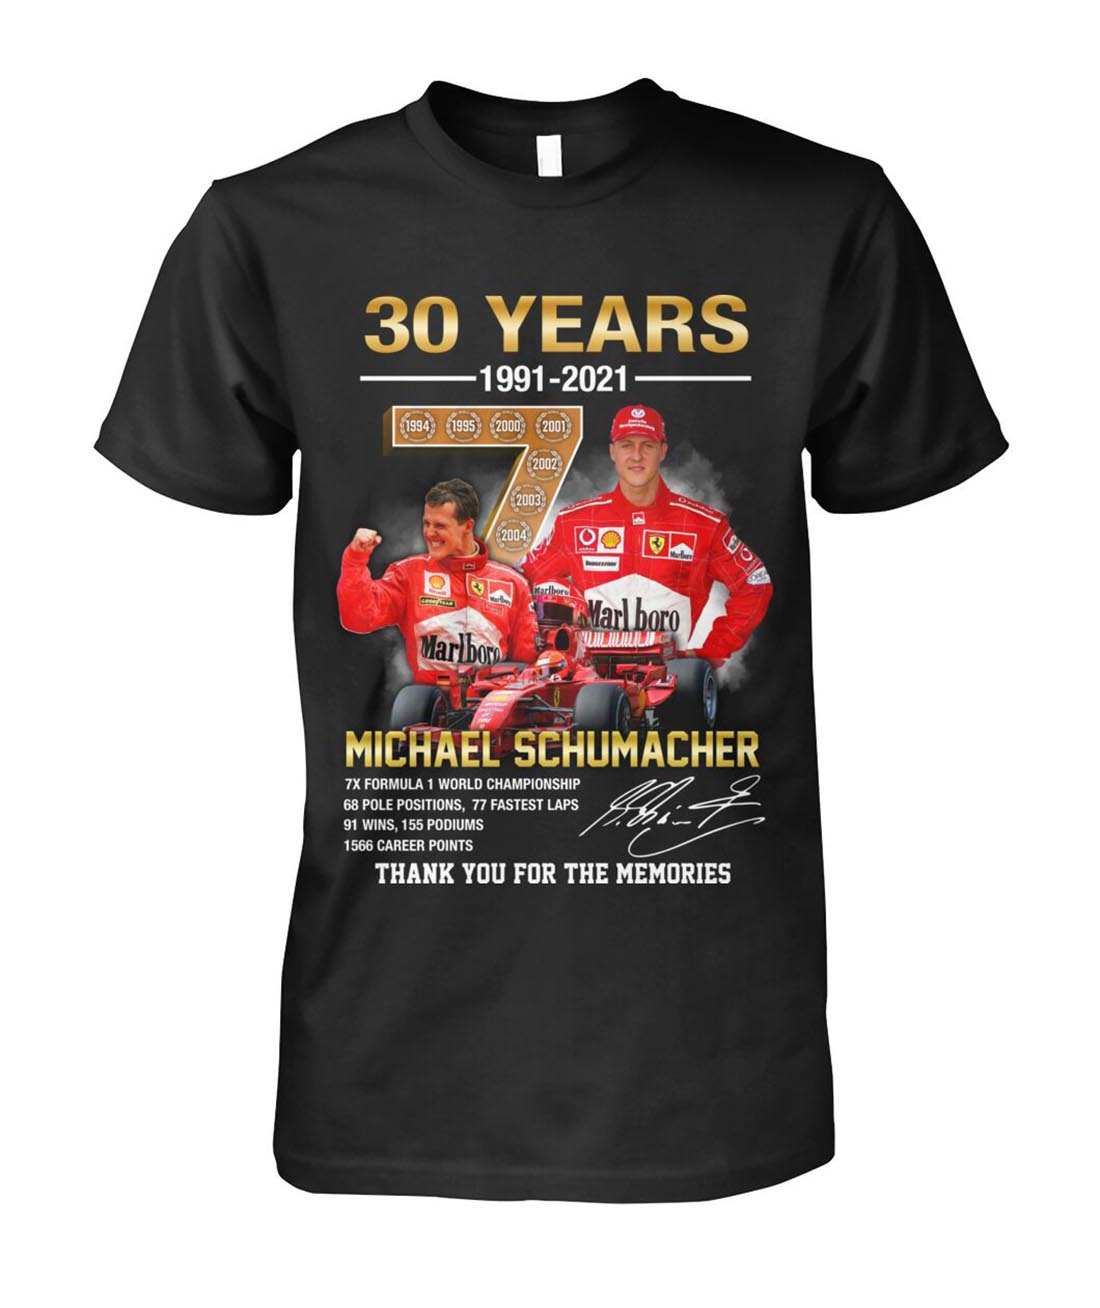 30 years Michael Schumacher thank you for the memories shirt